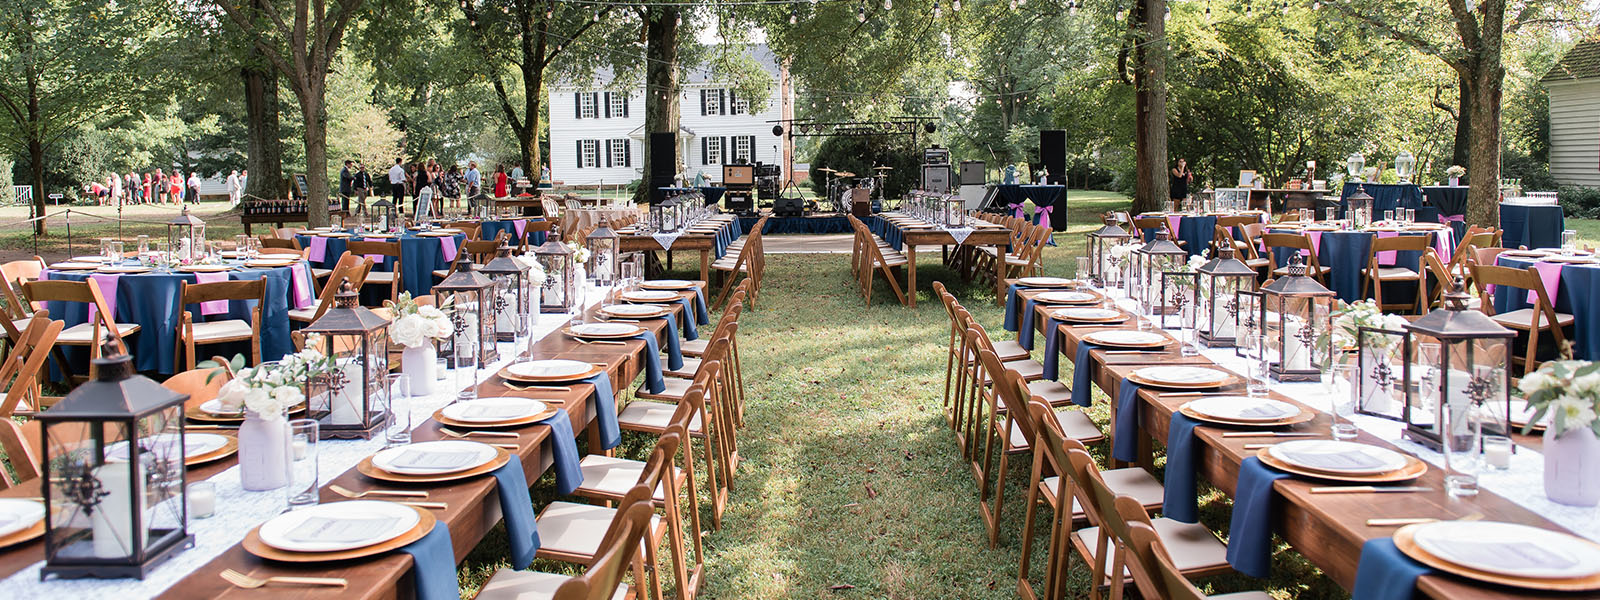 Event rentals in Richmond VA, Colonial Heights, South Hill, Chester, and Petersburg Virginia